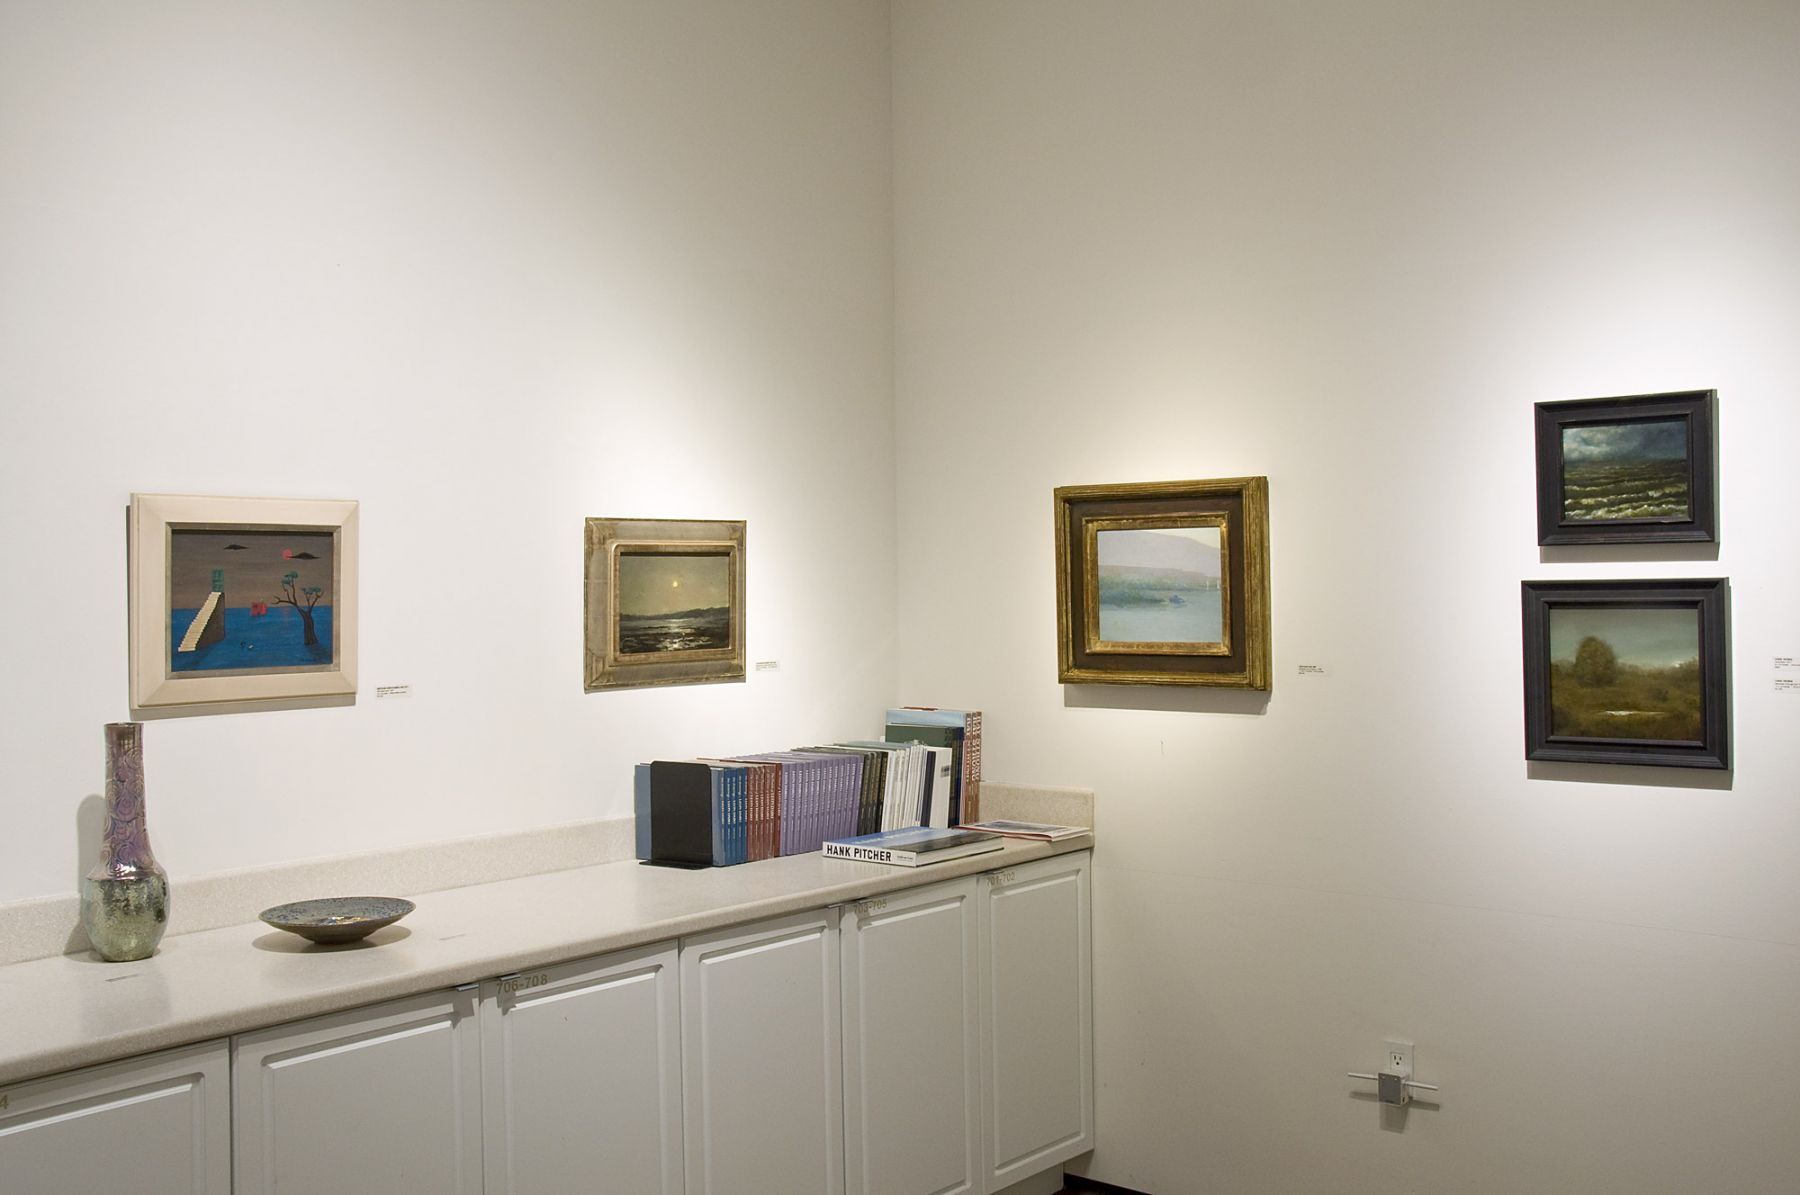 Winter Salon I, 2018, Gertrude Abercrombie, Lockwood de Forest, Leon Dabo, Chris Peters